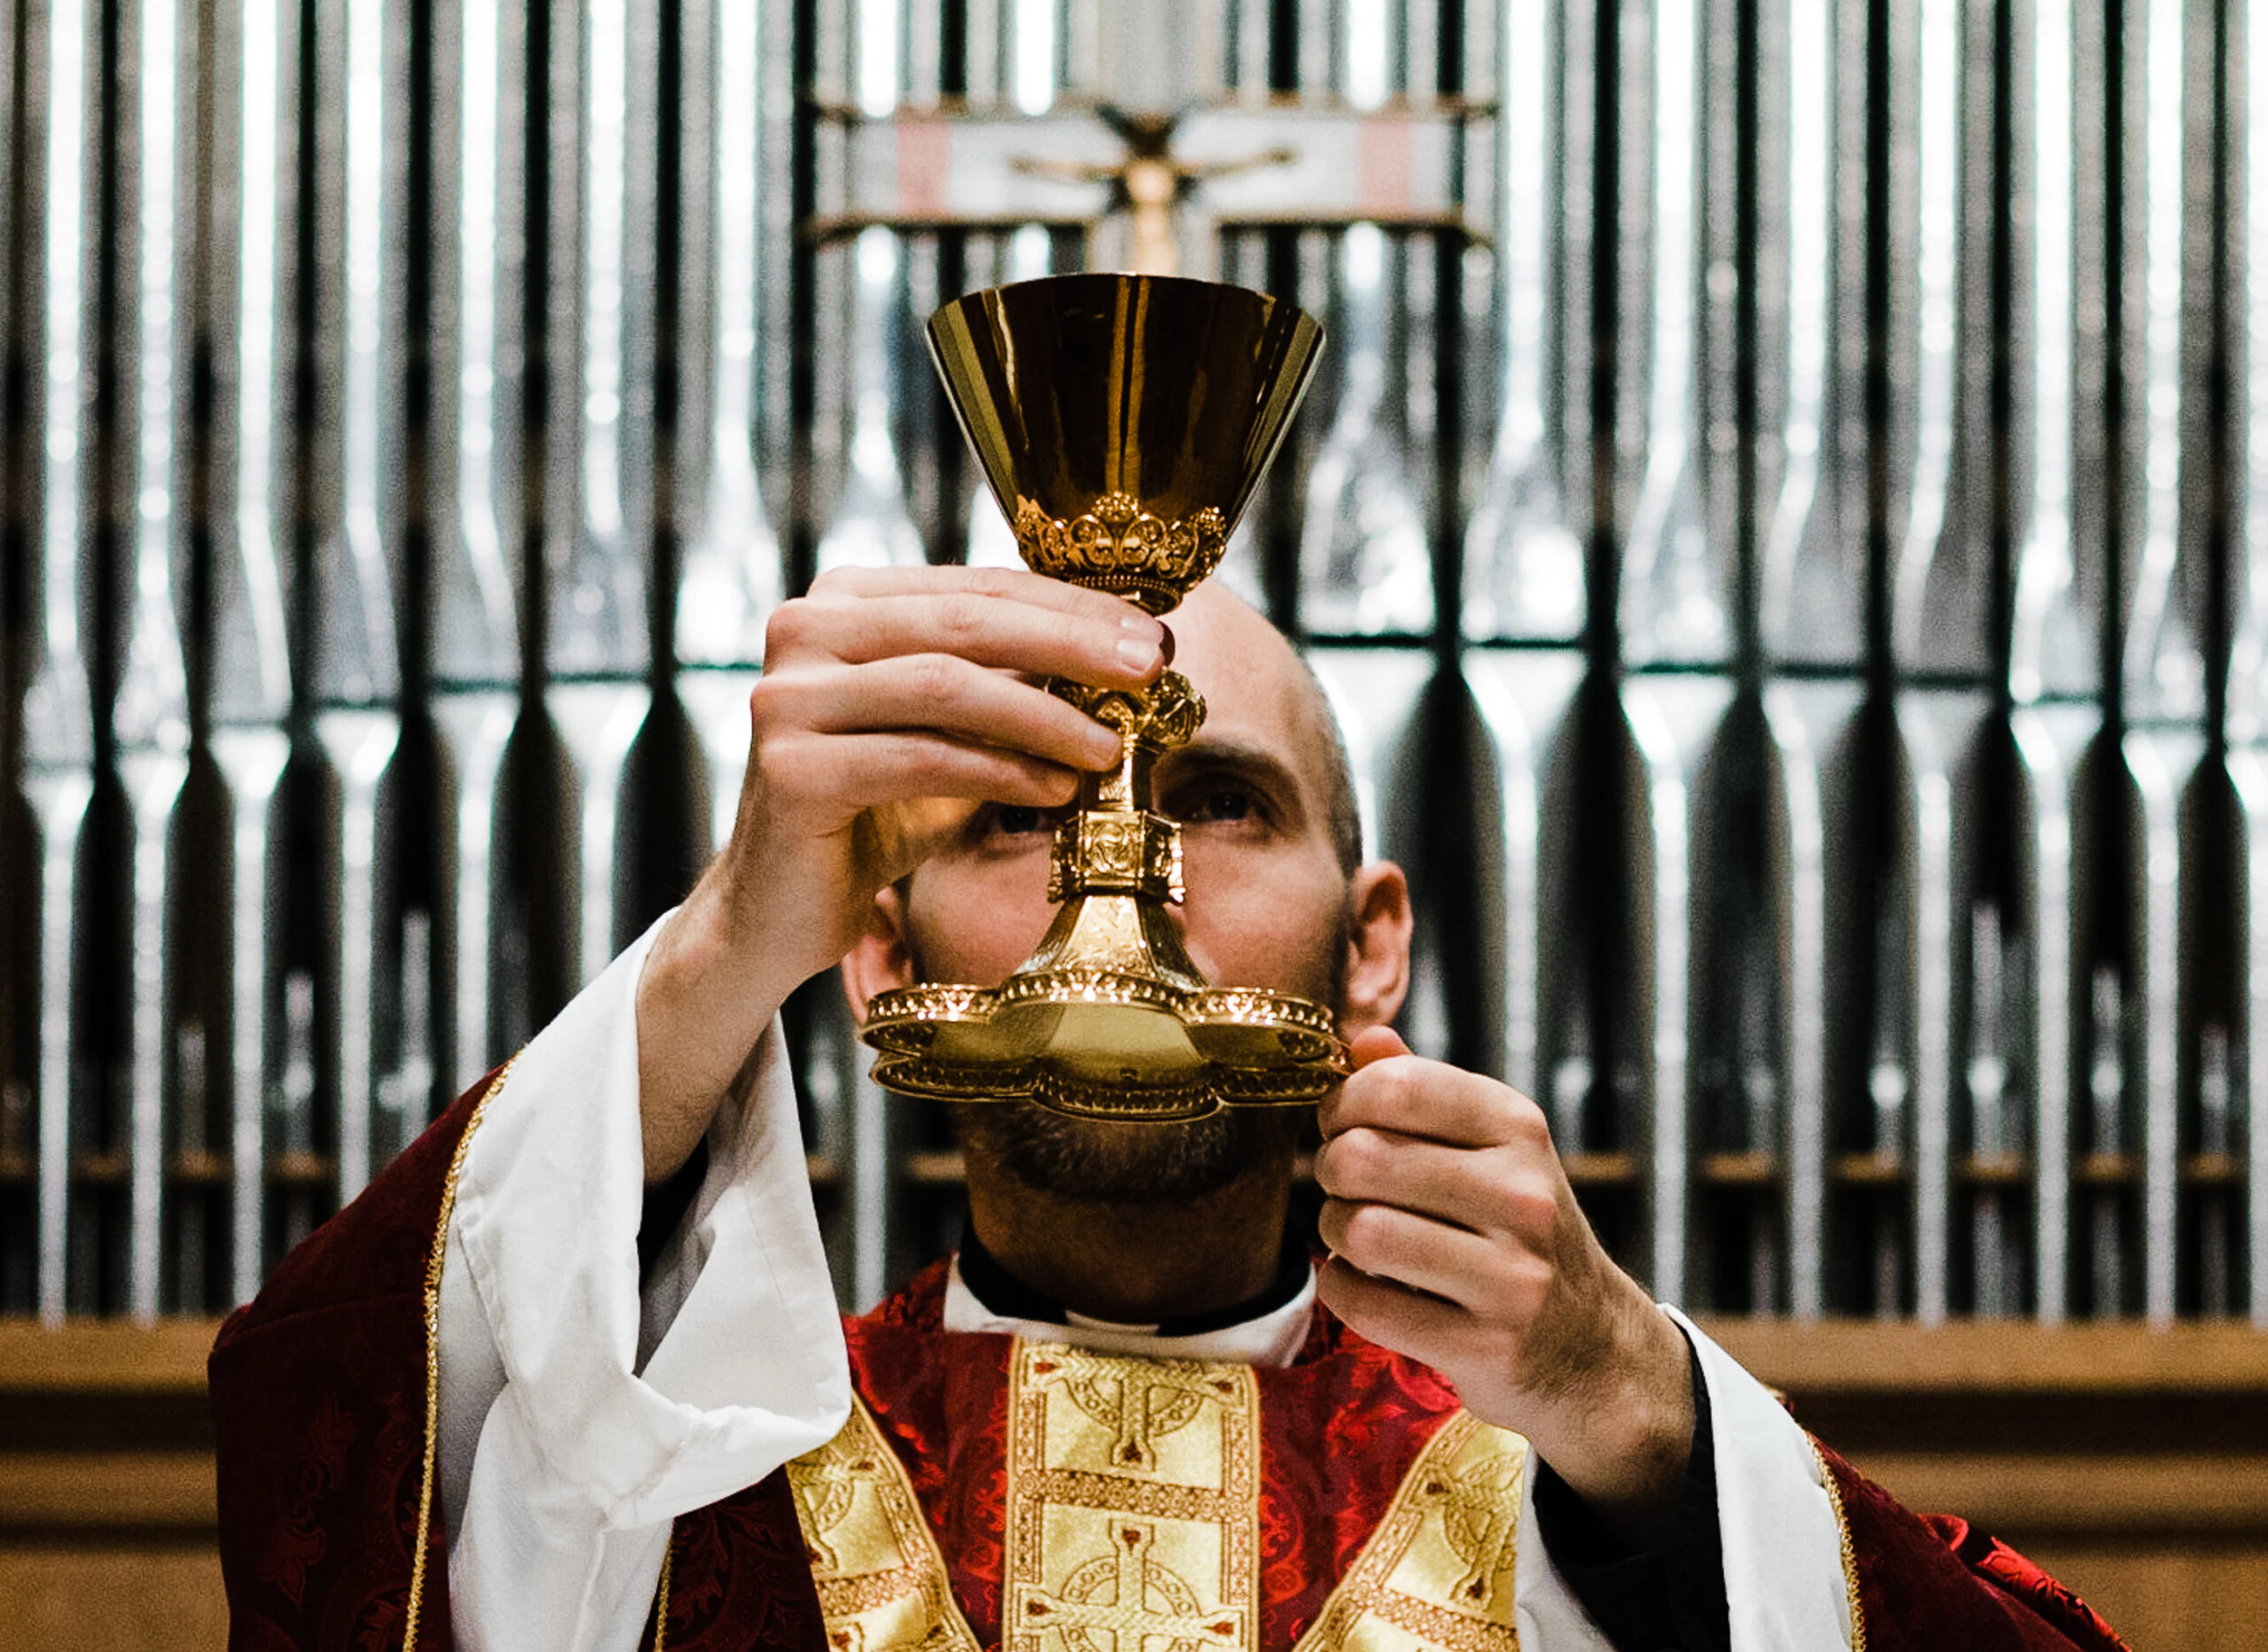 Priestly Vocations Shouldn't Be So Rare